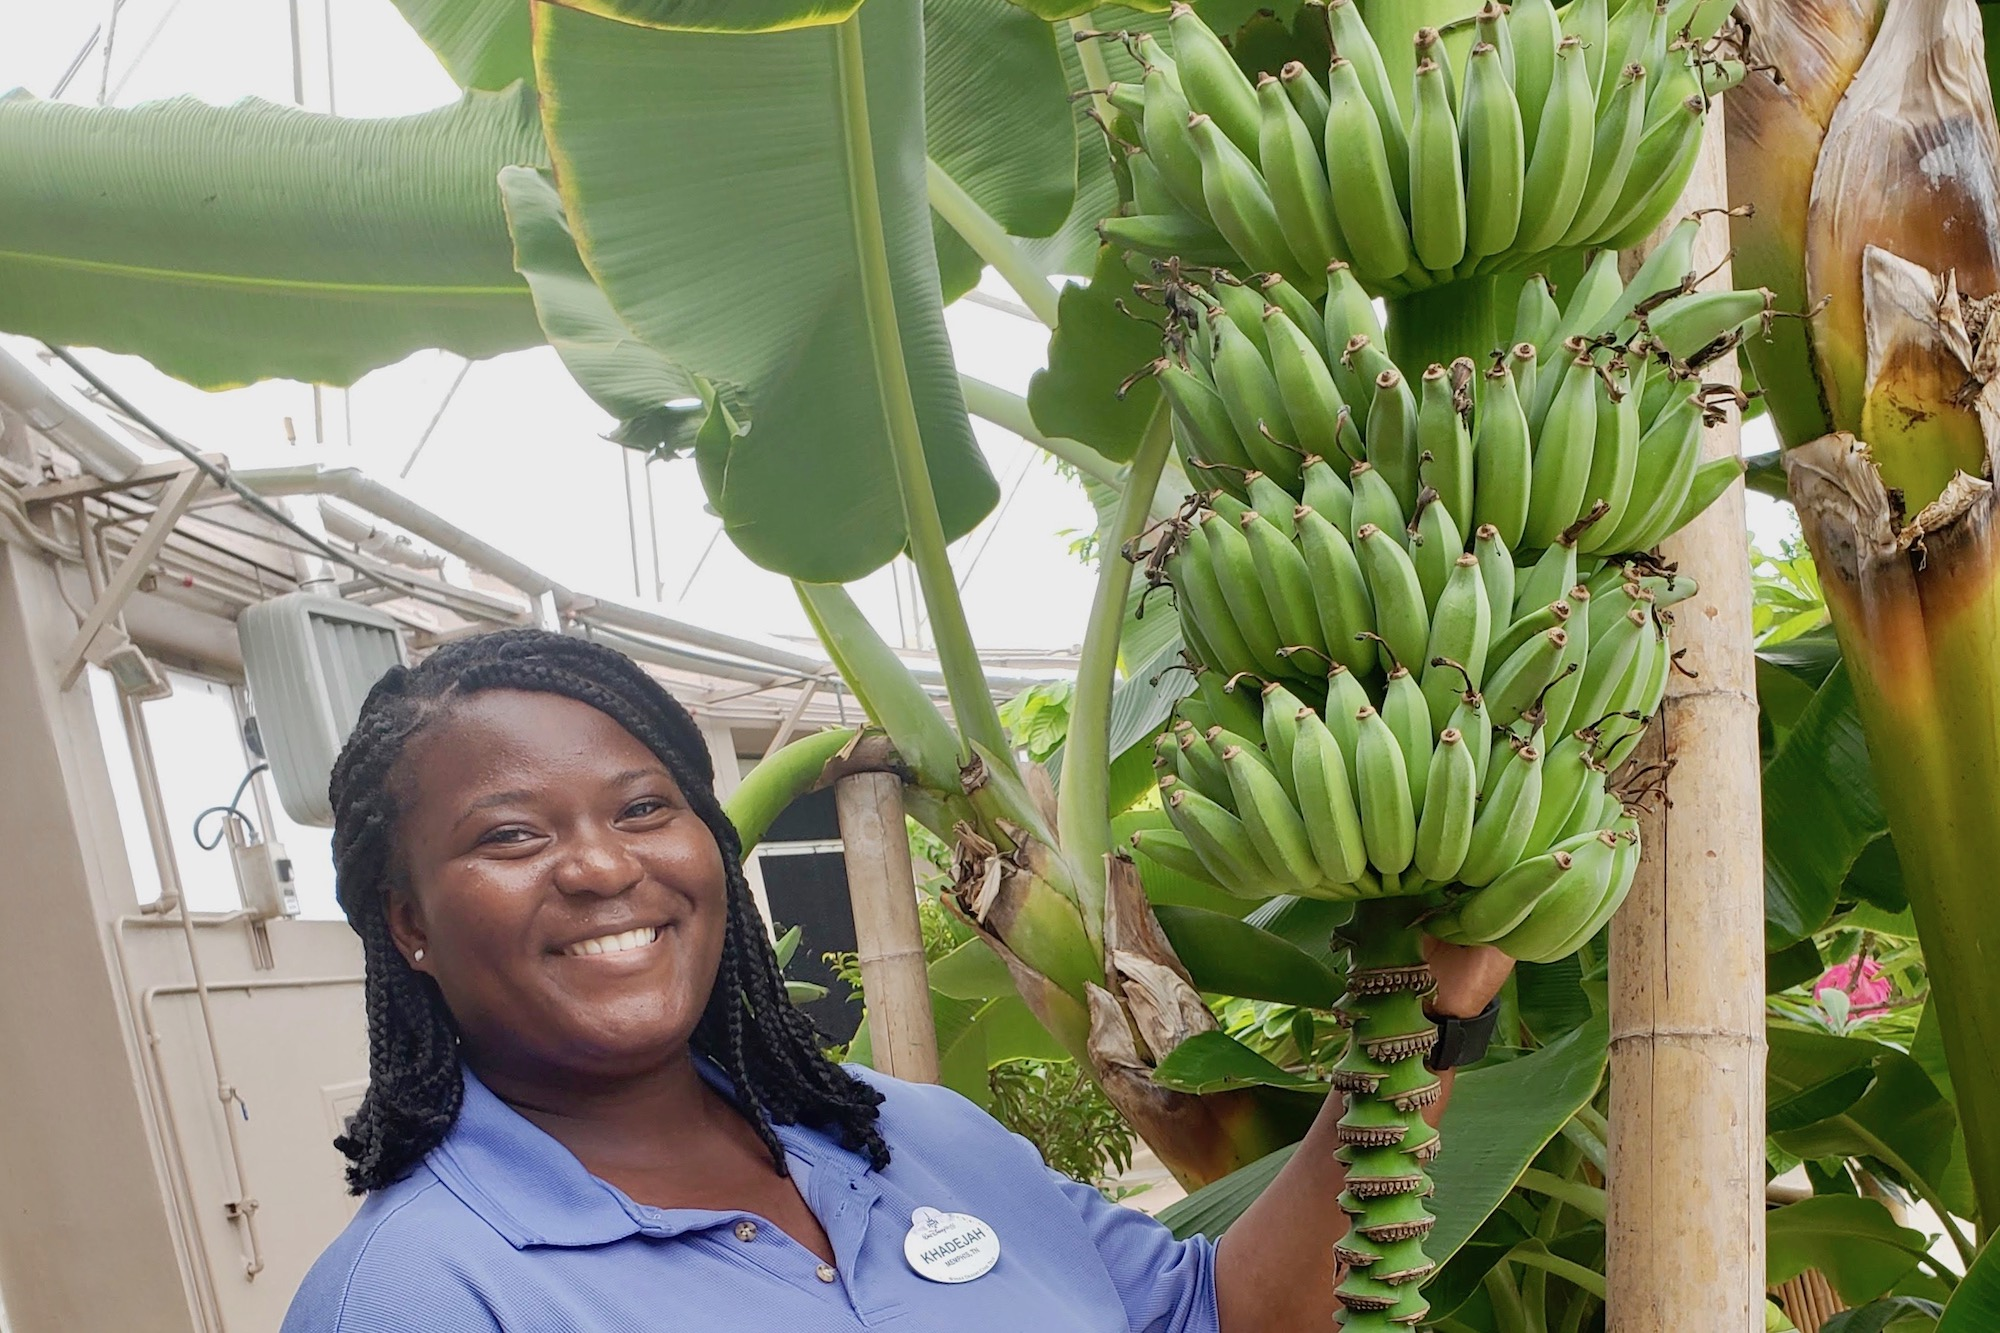 Austin Peay agricultural sciences graduate realizing dream at Epcot